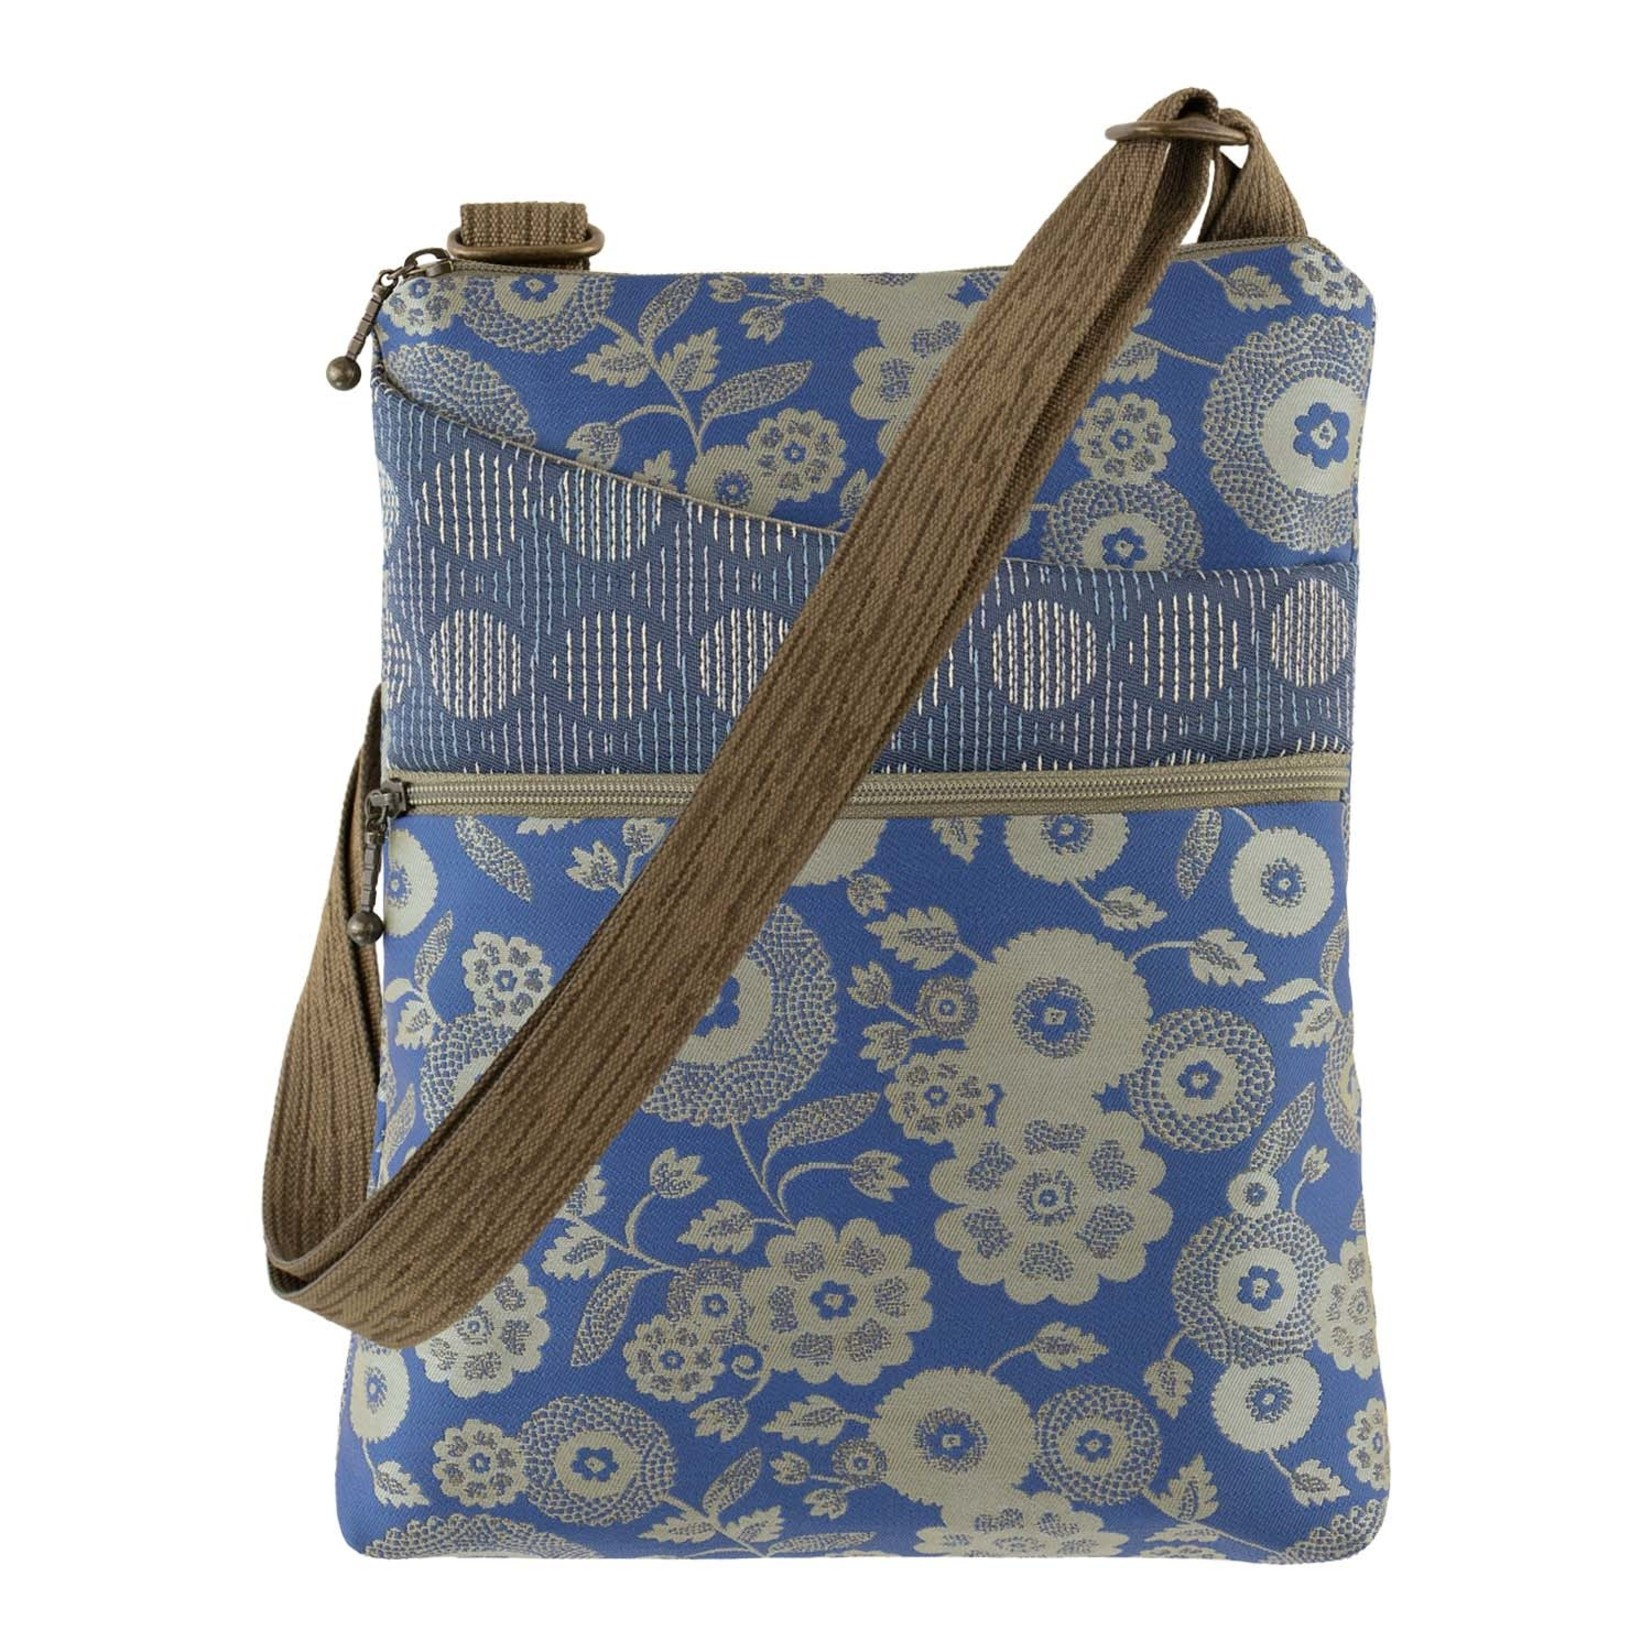 Maruca Pocket Bag SS21 Parasol Blue